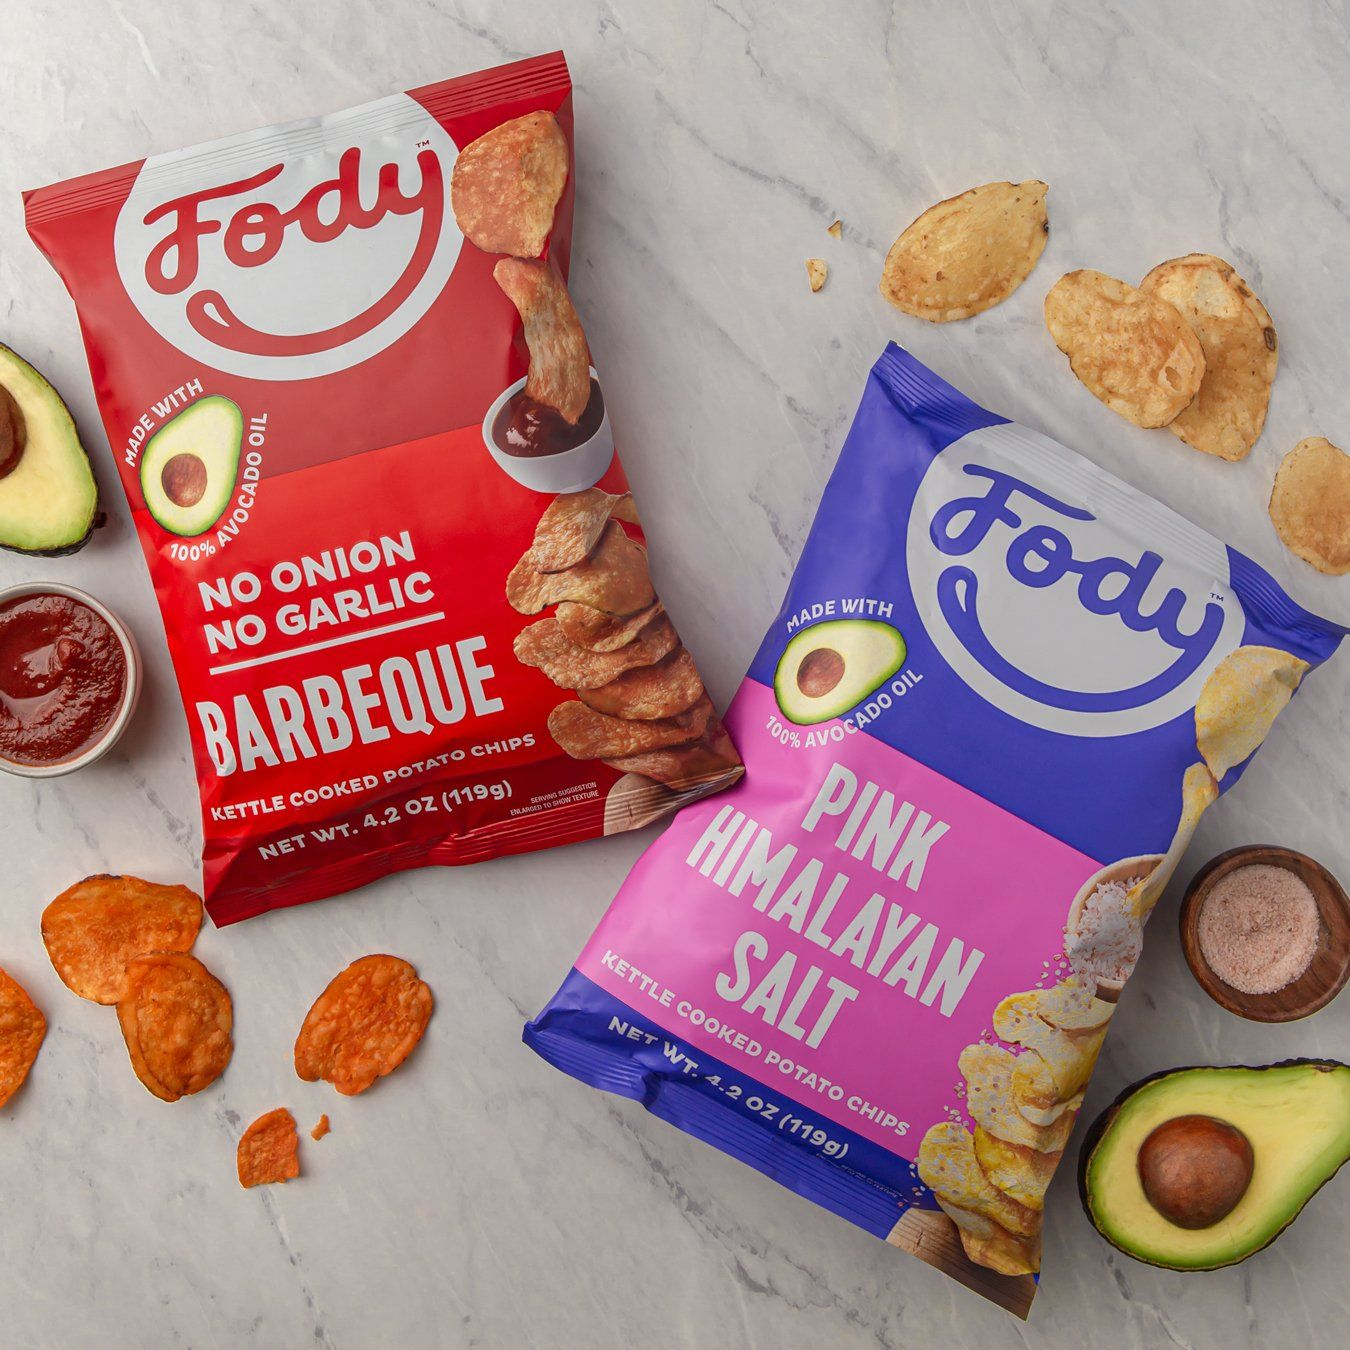 fody low fodmap bbq chips and fody low fodmap pink himalayan salt kettle chips with 2 avocado halves